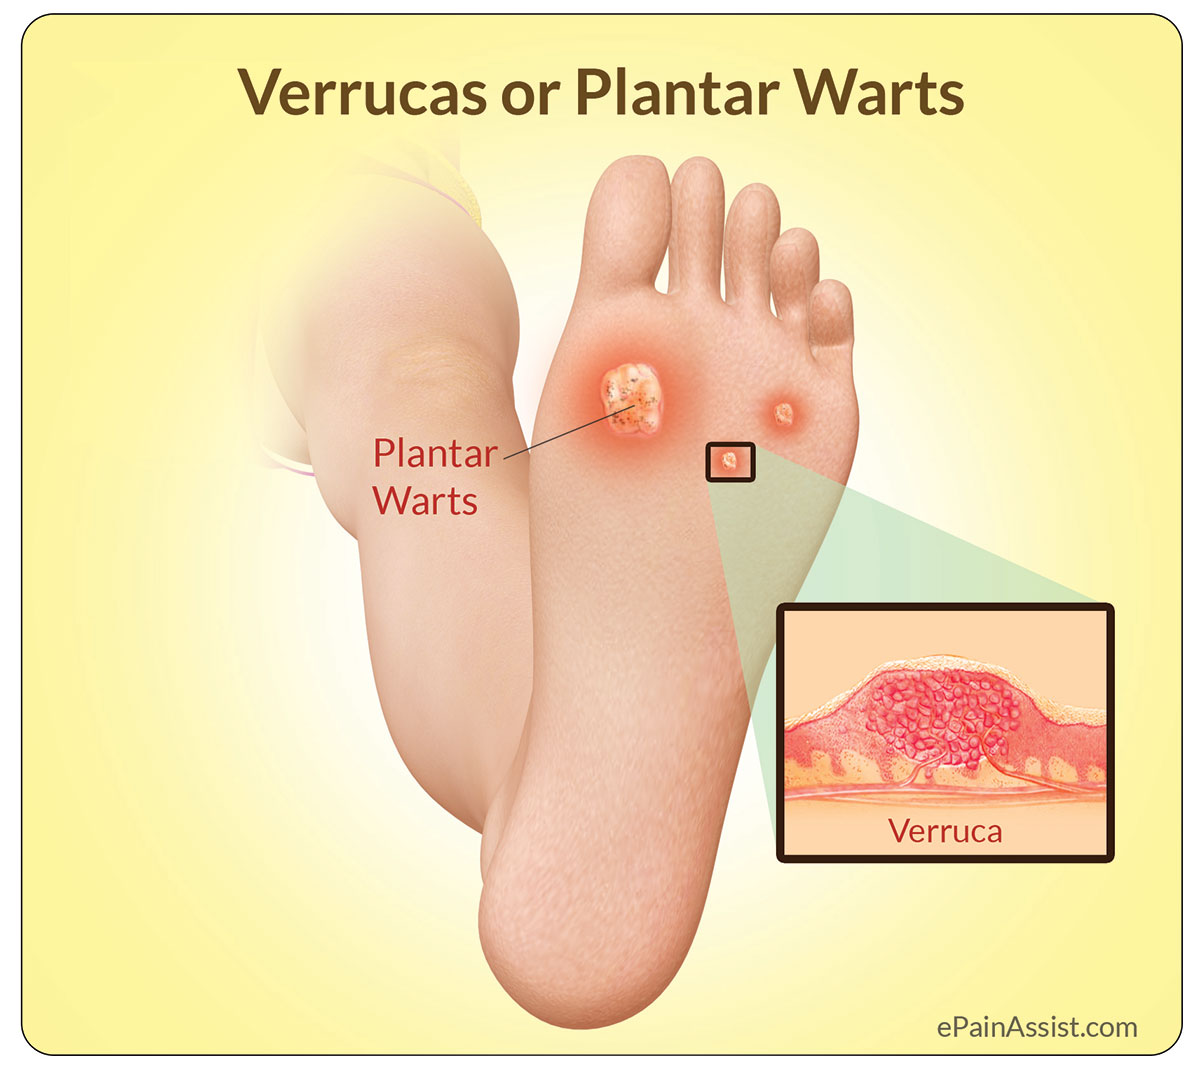 Common Warts: Learn About Symptoms, Treatment and Causes